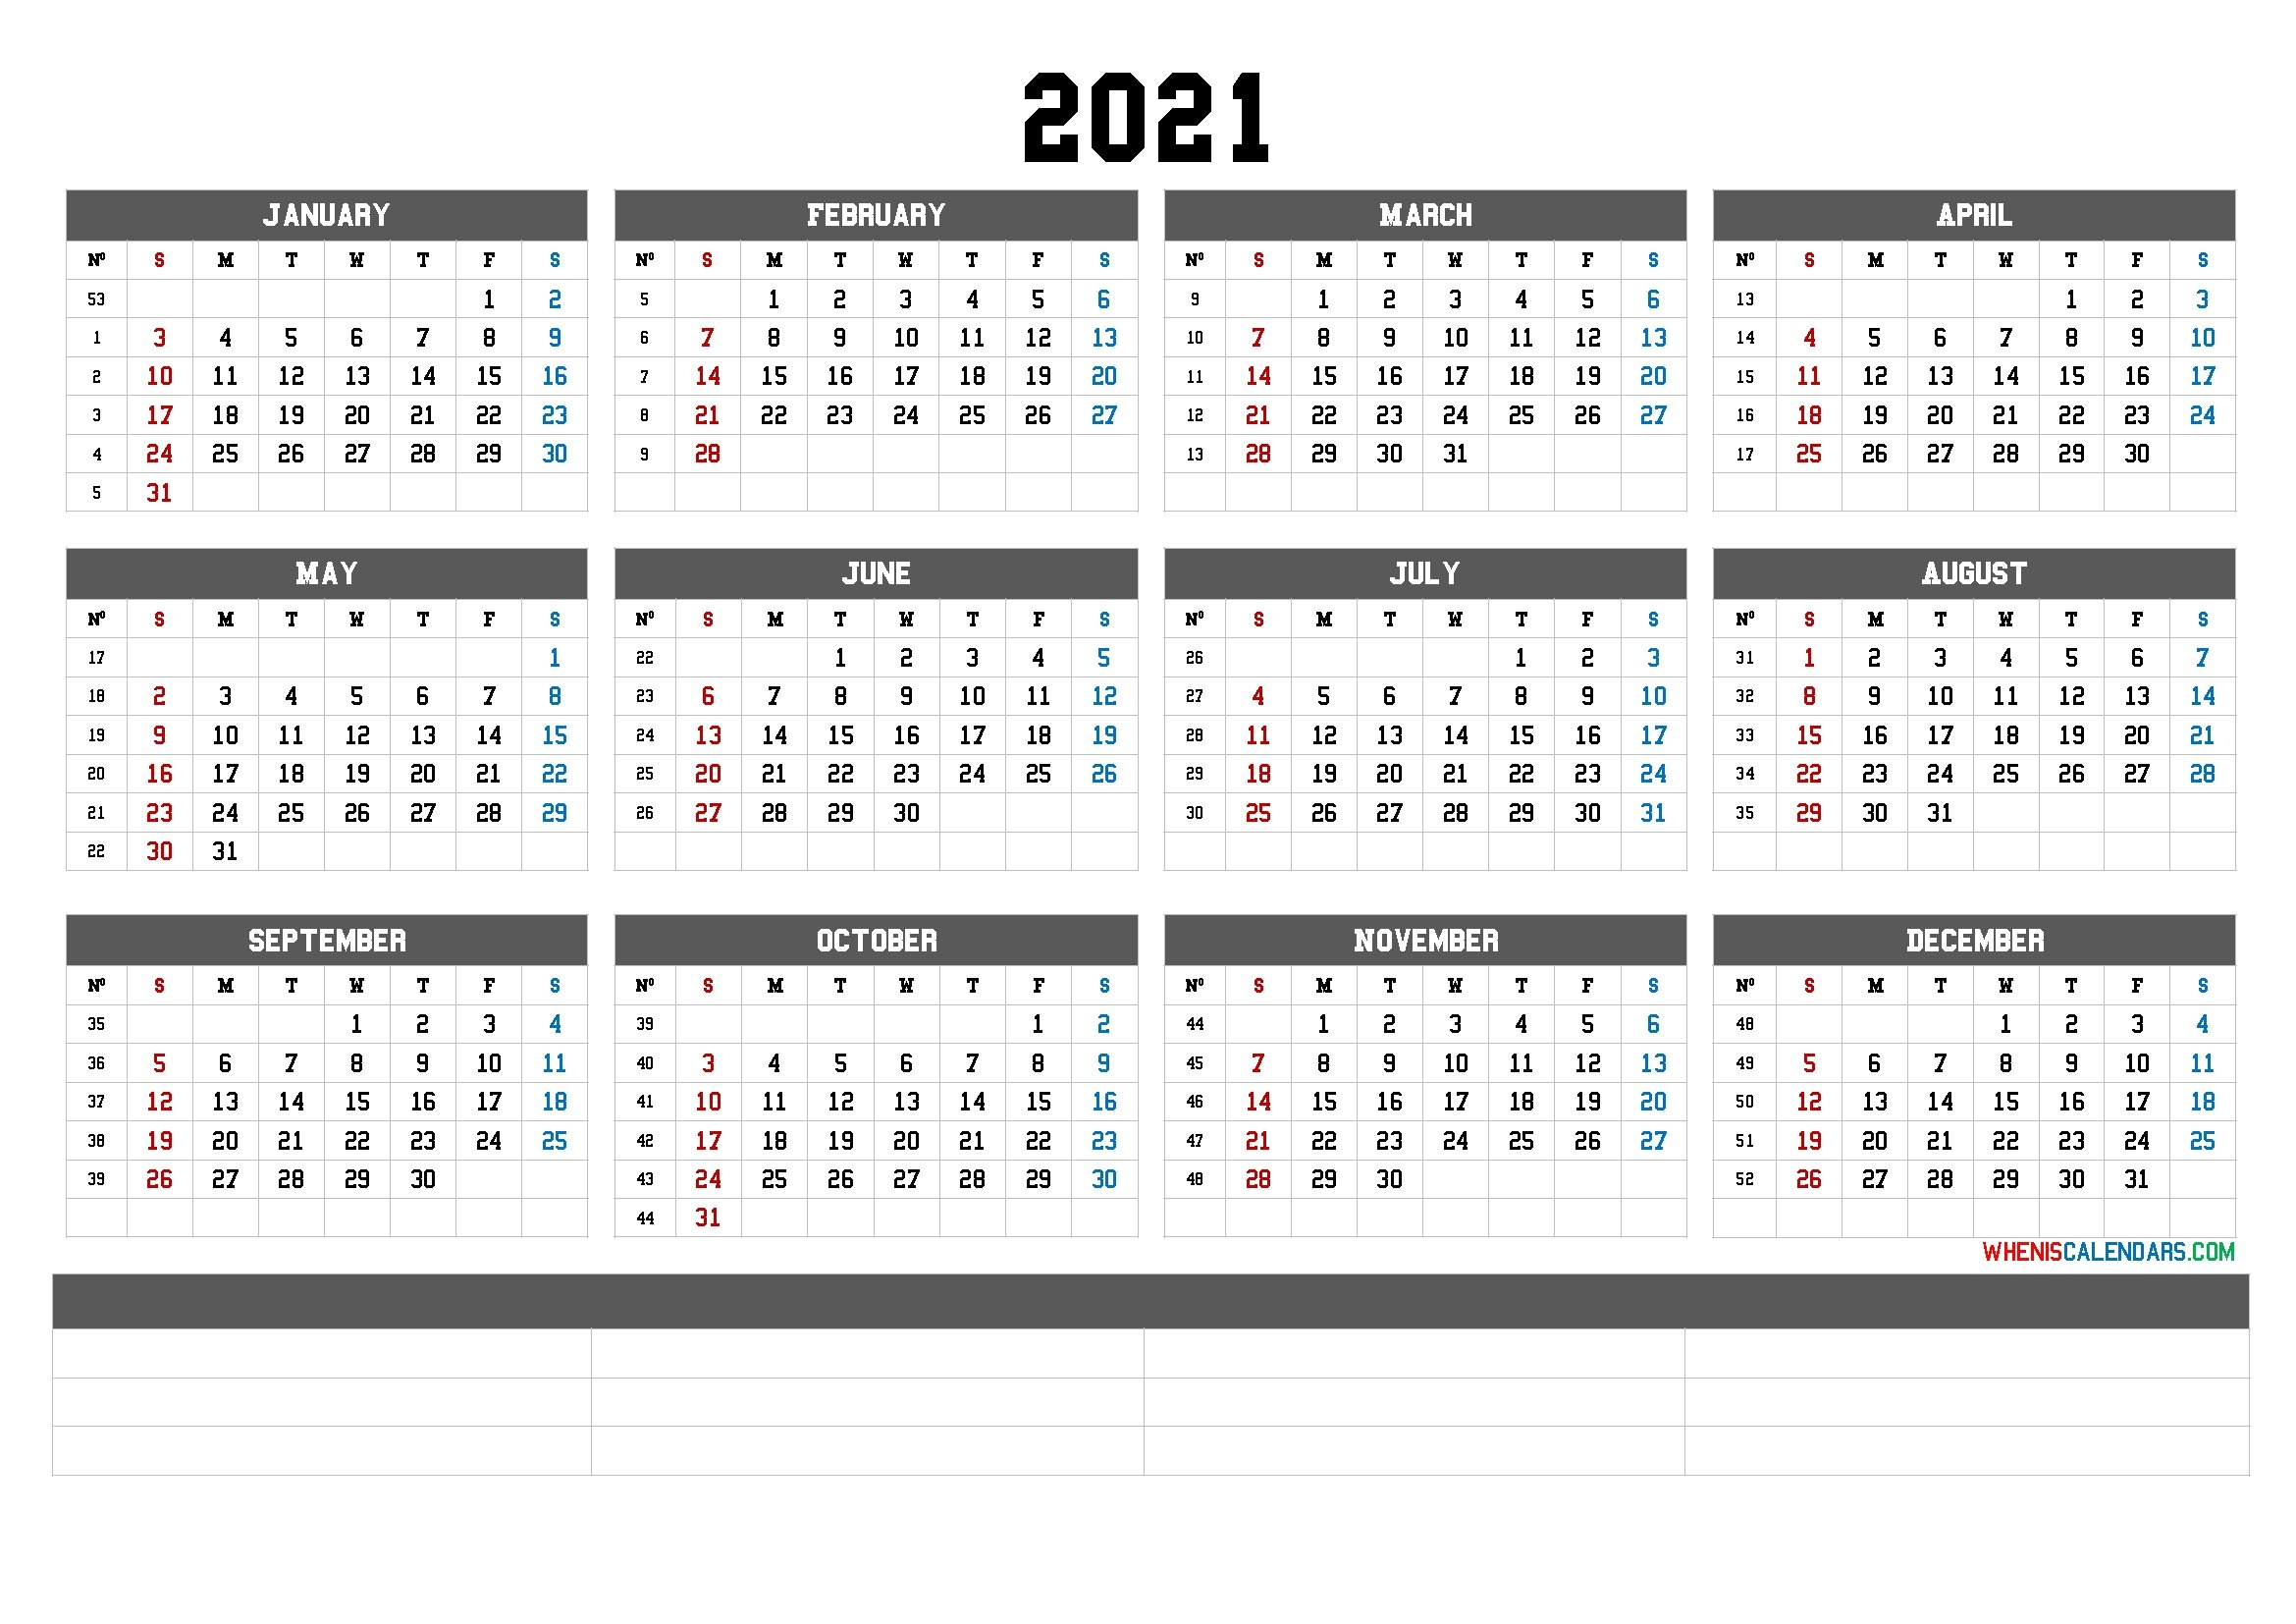 2021 Yearly Calendar Template Word (6 Templates) throughout 2021 Yearly Calendar Template Printable Photo